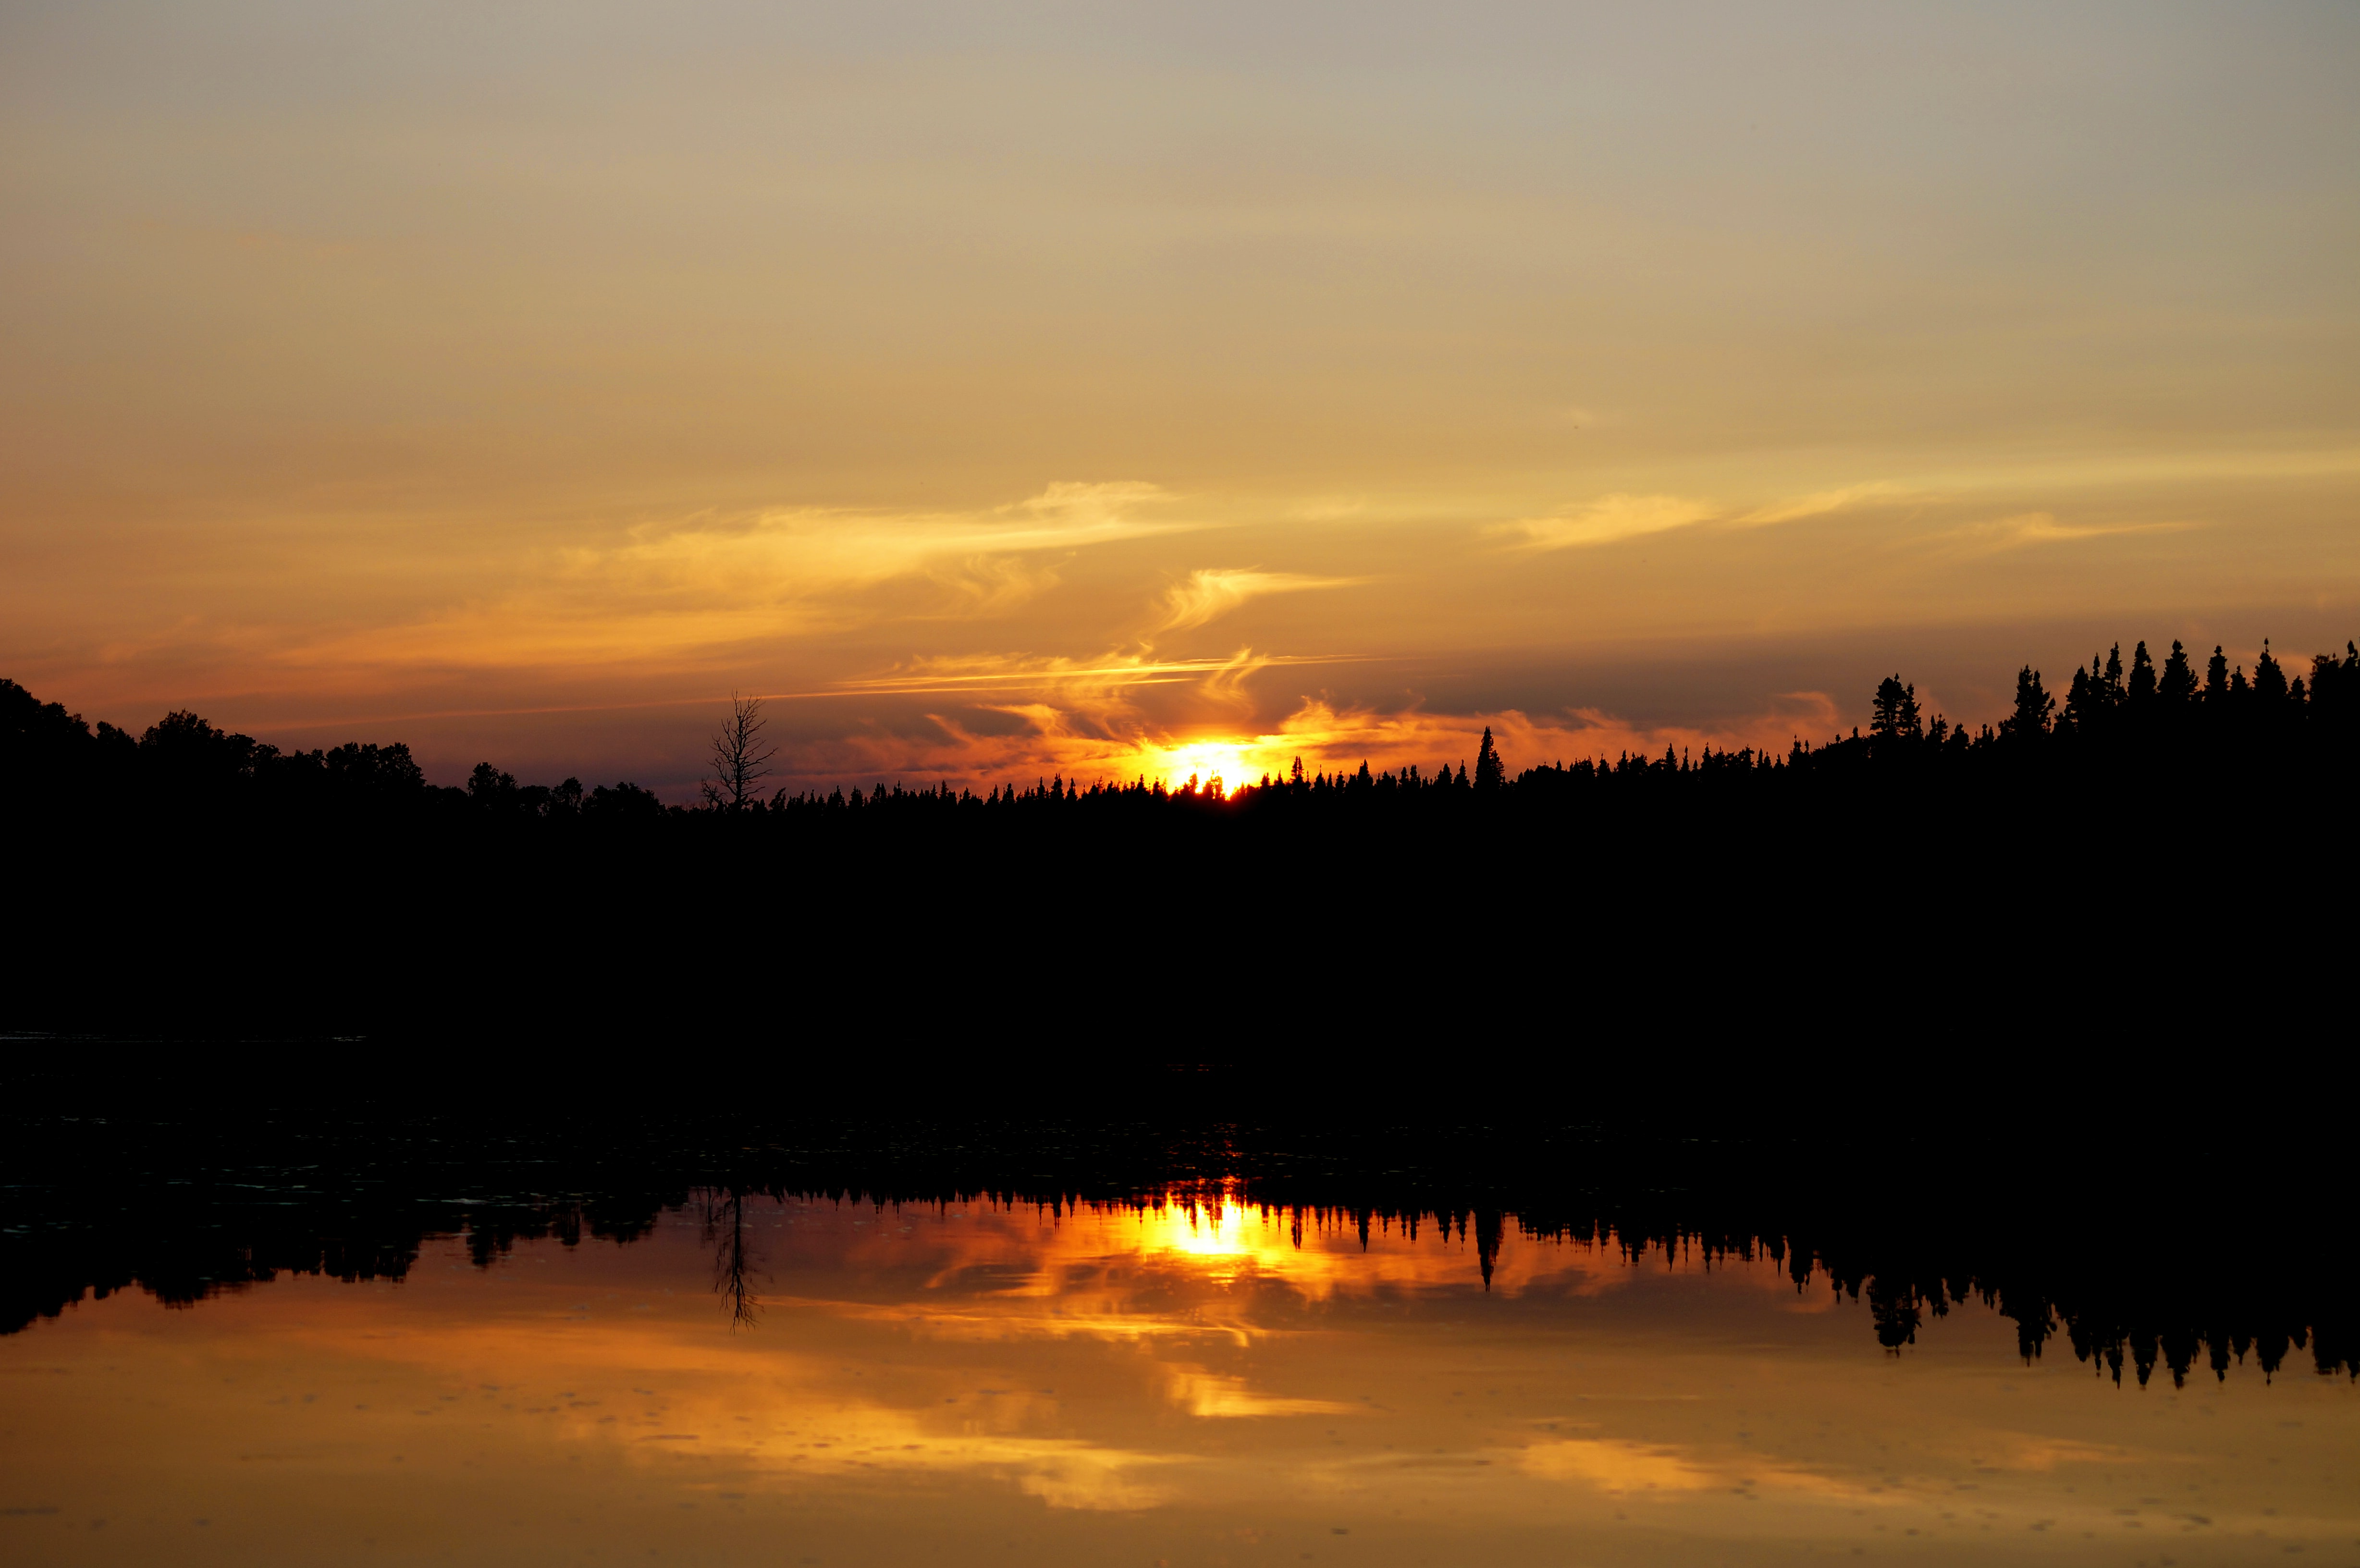 Golden sunset in Gander Bay with forest reflection in the lake.